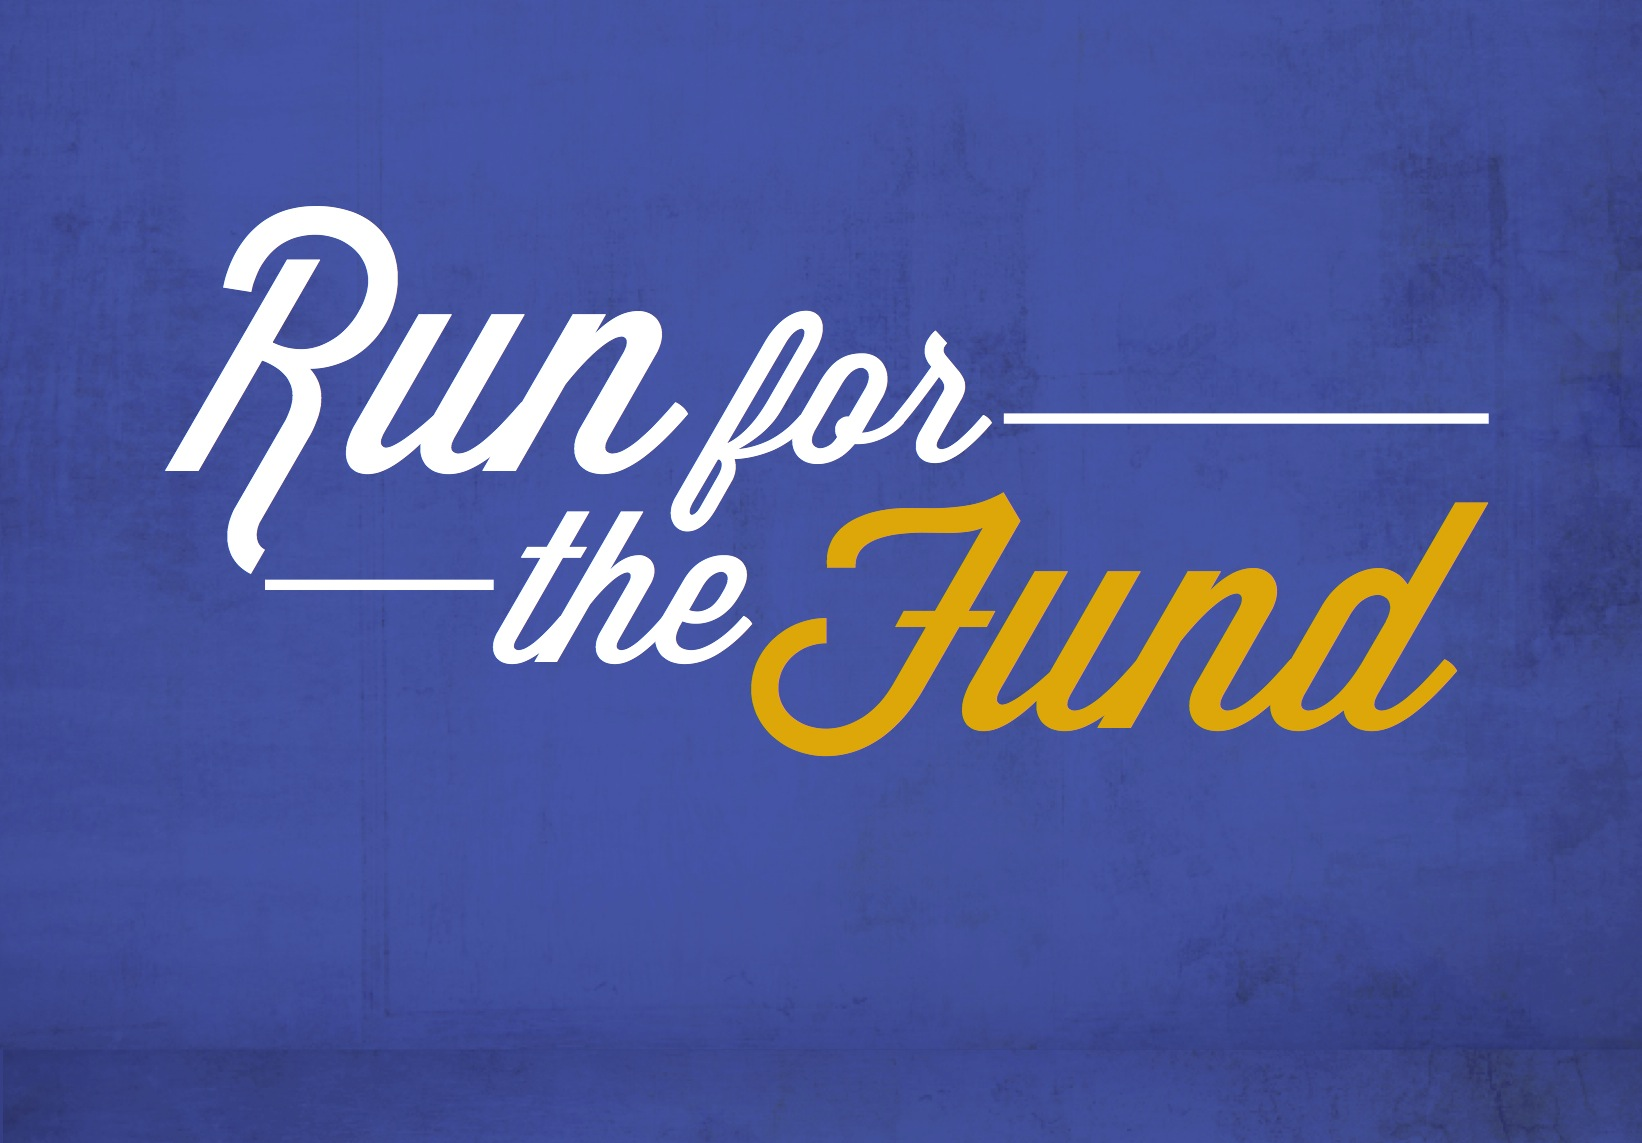 Poster for annual Taylor Fund 5K race